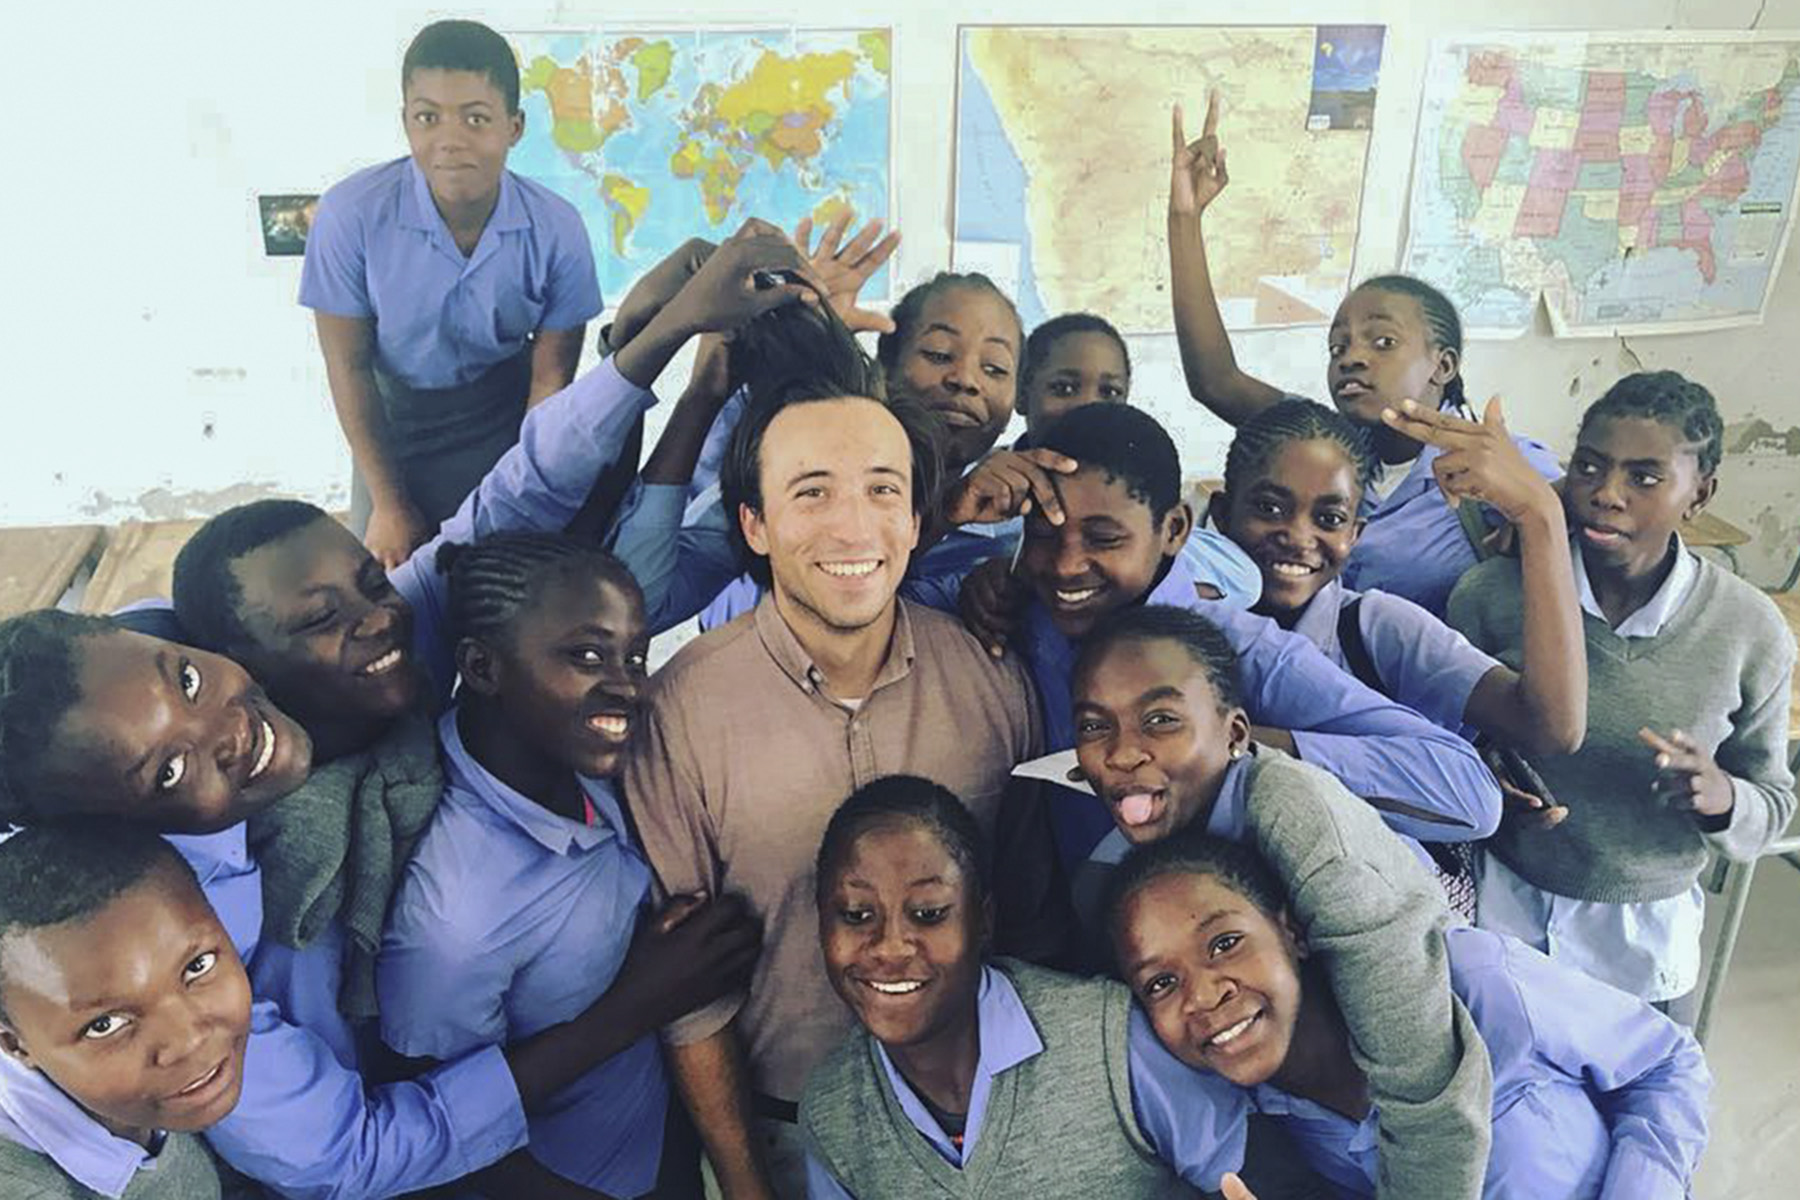 Graham Legget â17 poses with his students in Namibia.